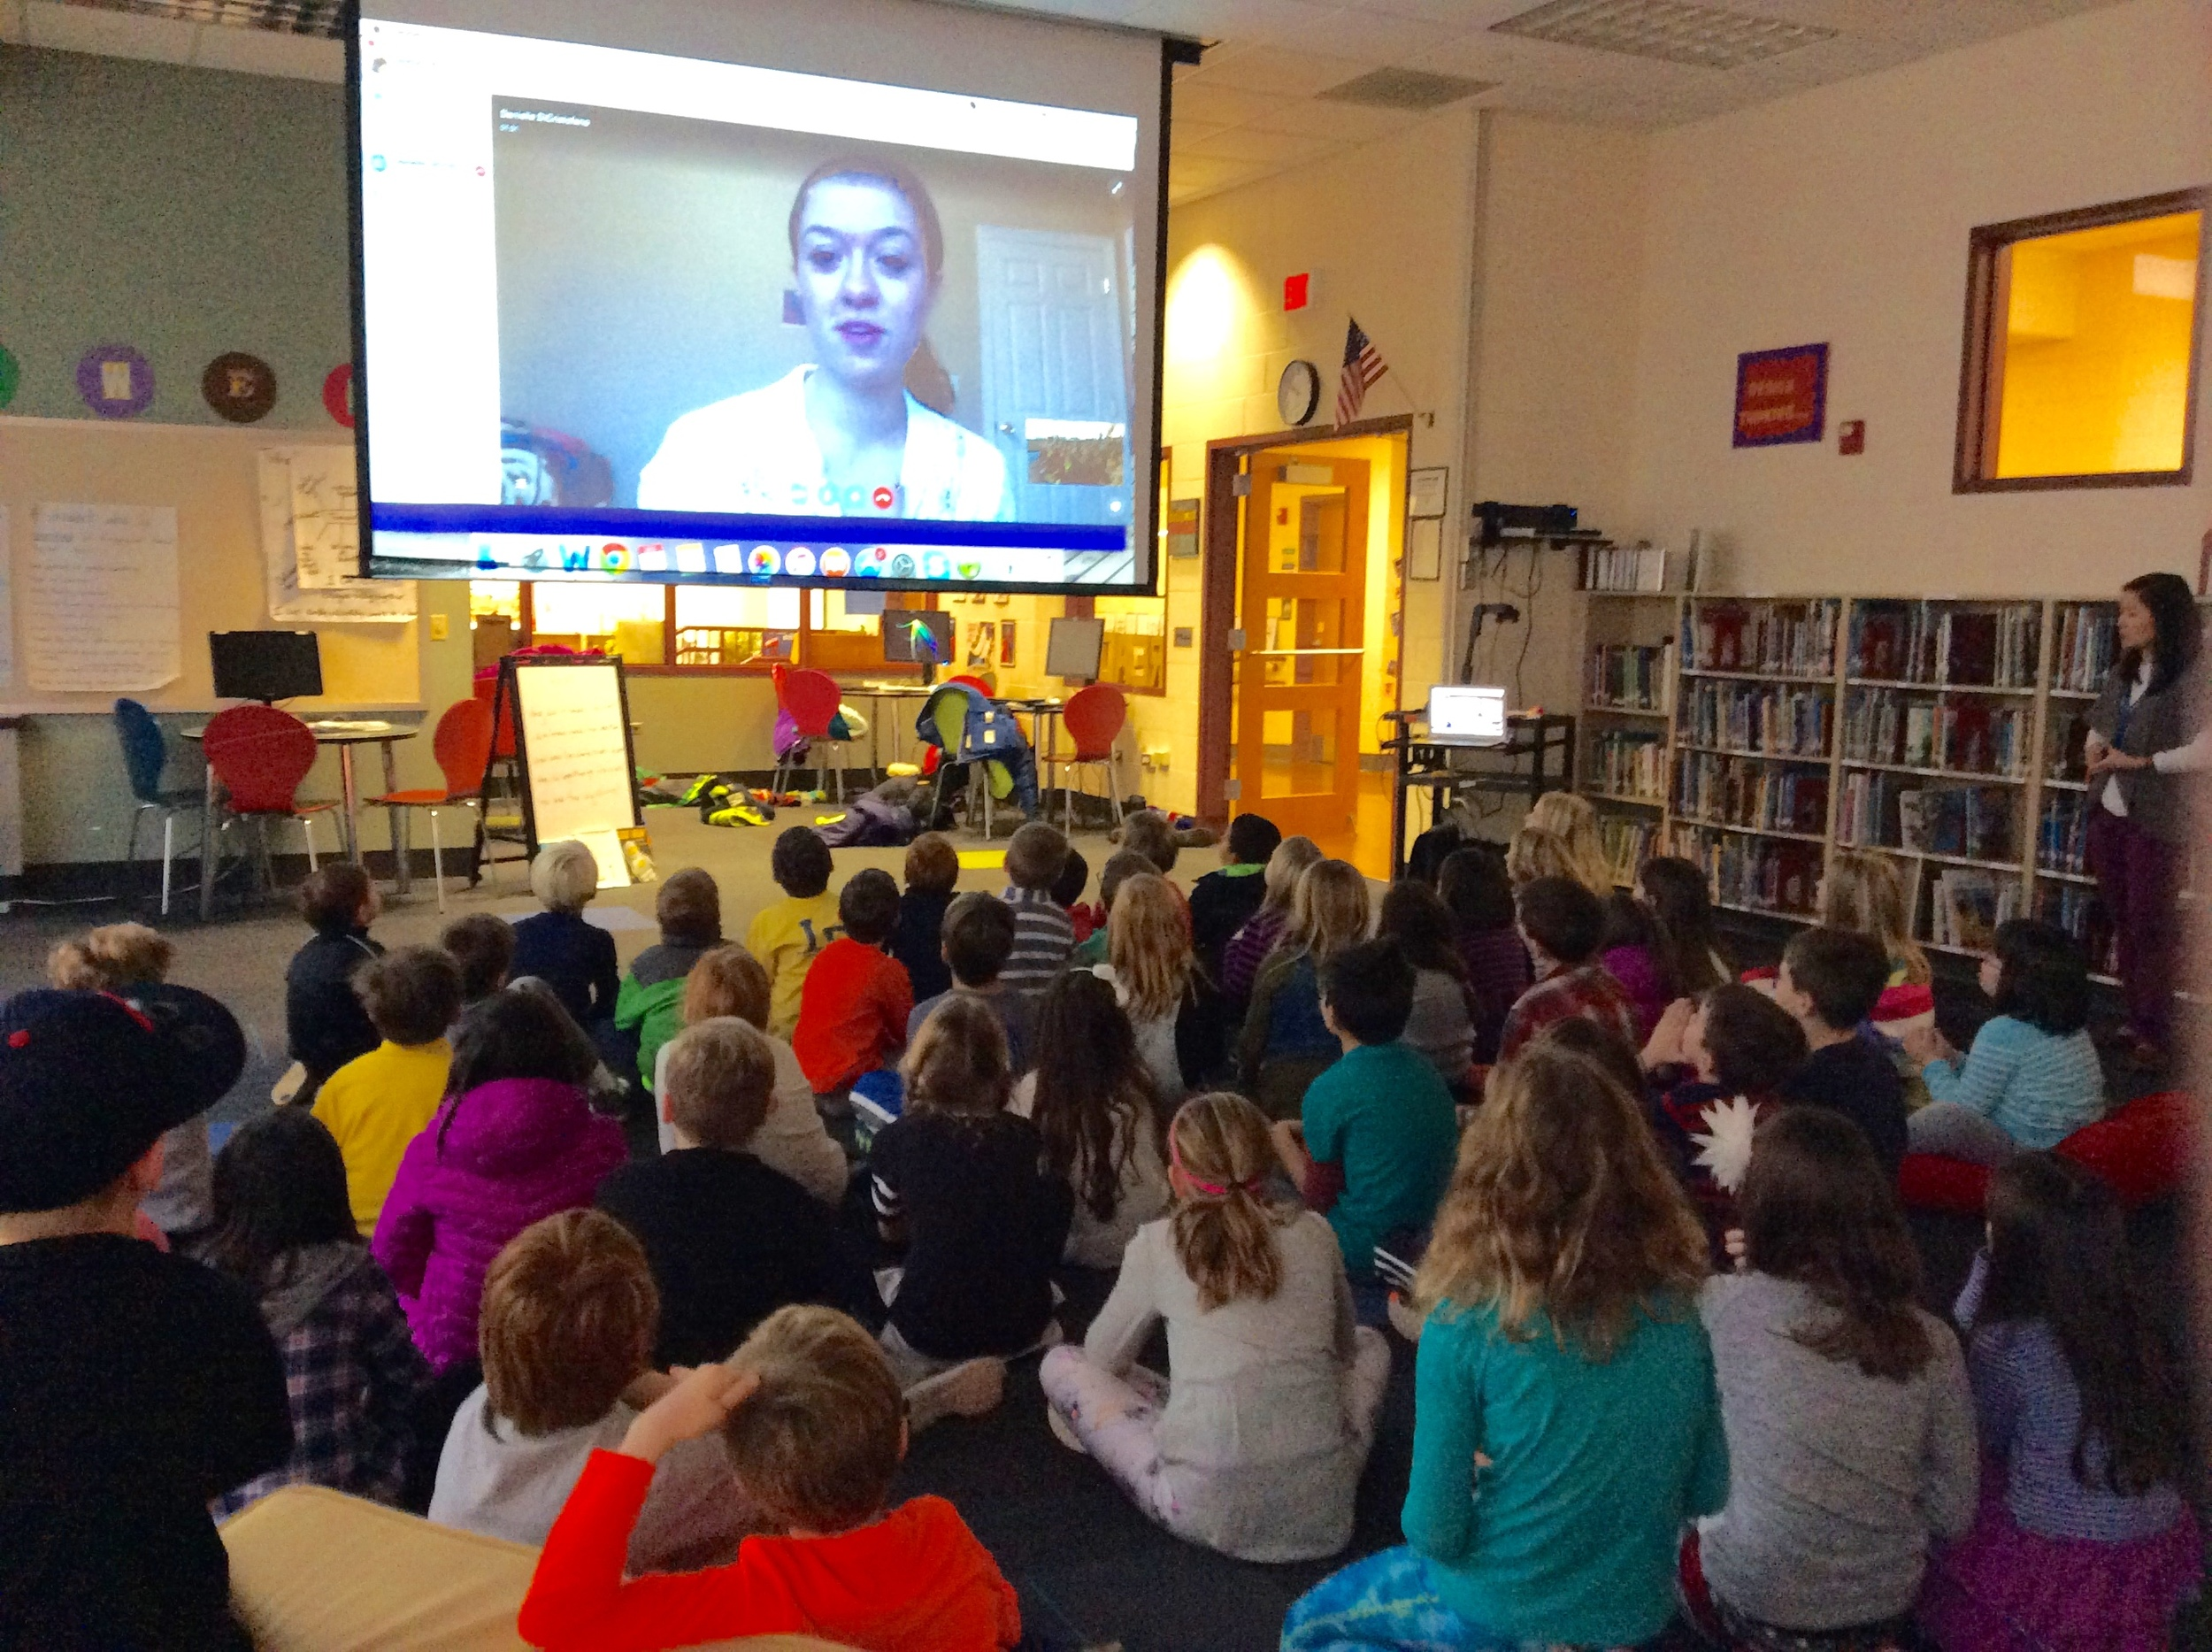 Danielle DiCristofano of University of Dayton's FRN chapter Skyping with a classroom of third graders at Sheridan Elementary in Dayton, Ohio.